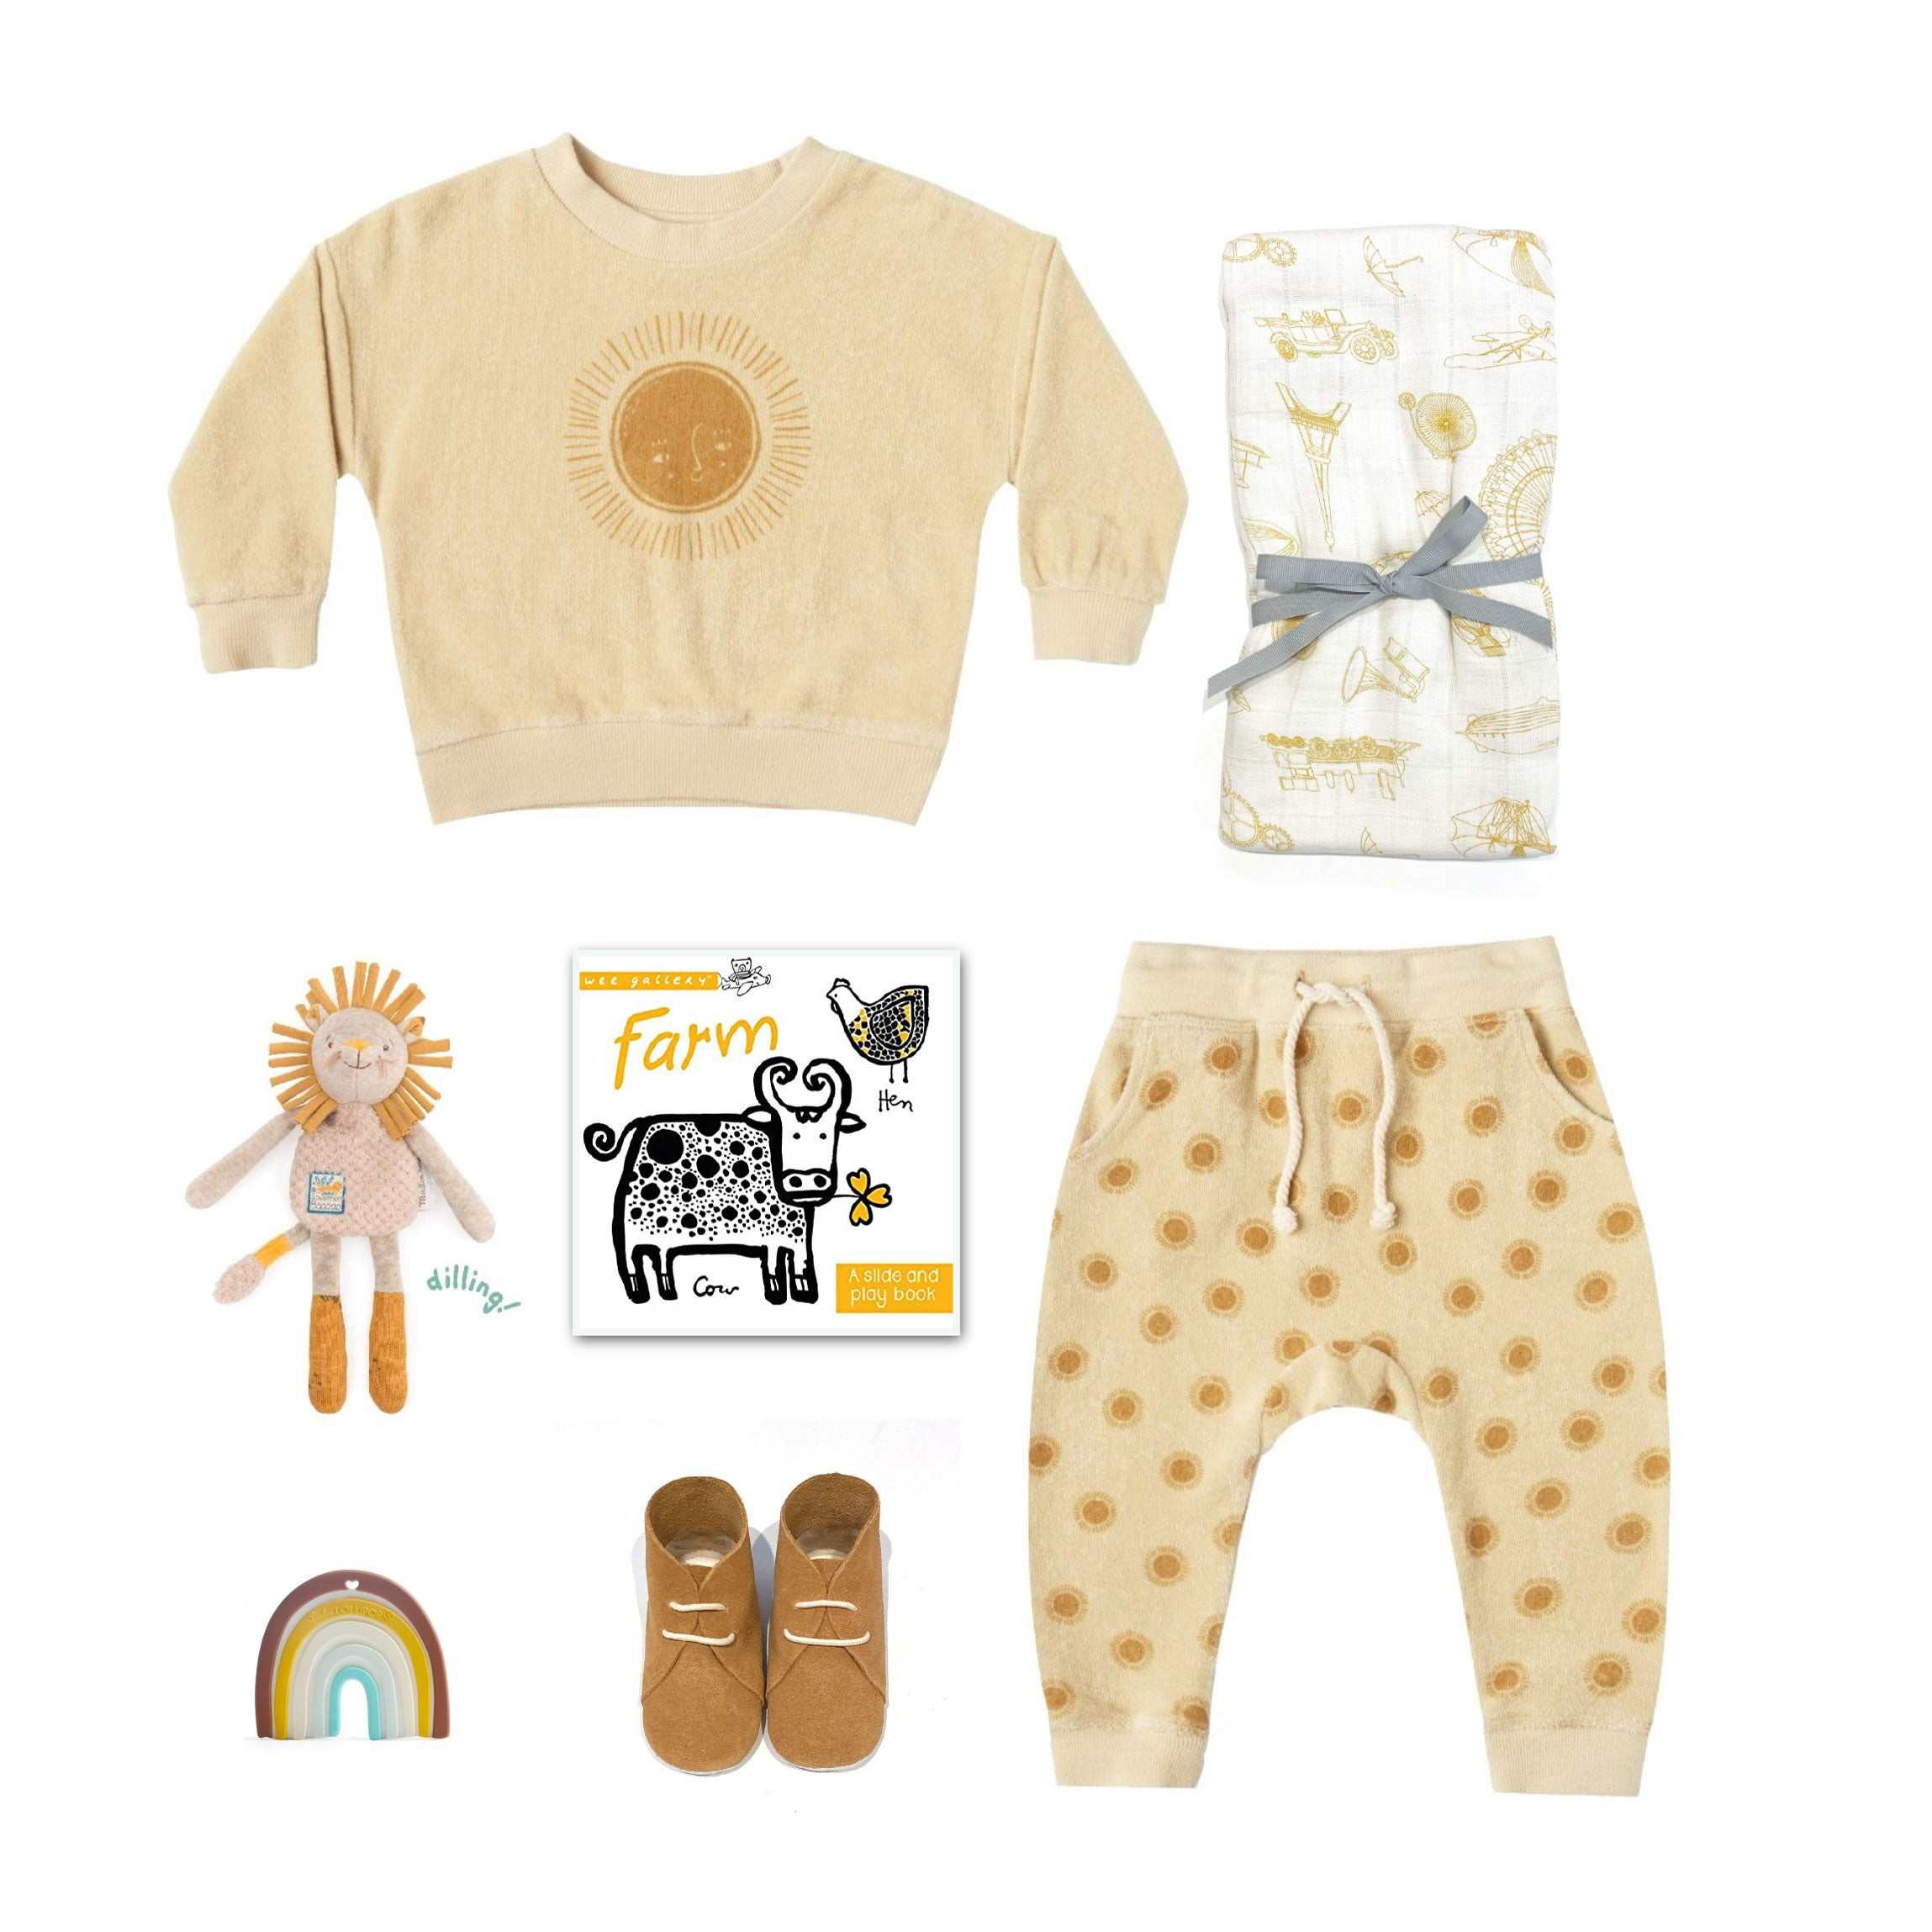 Trendy Baby Gift Basket featuring Rylee and Cru